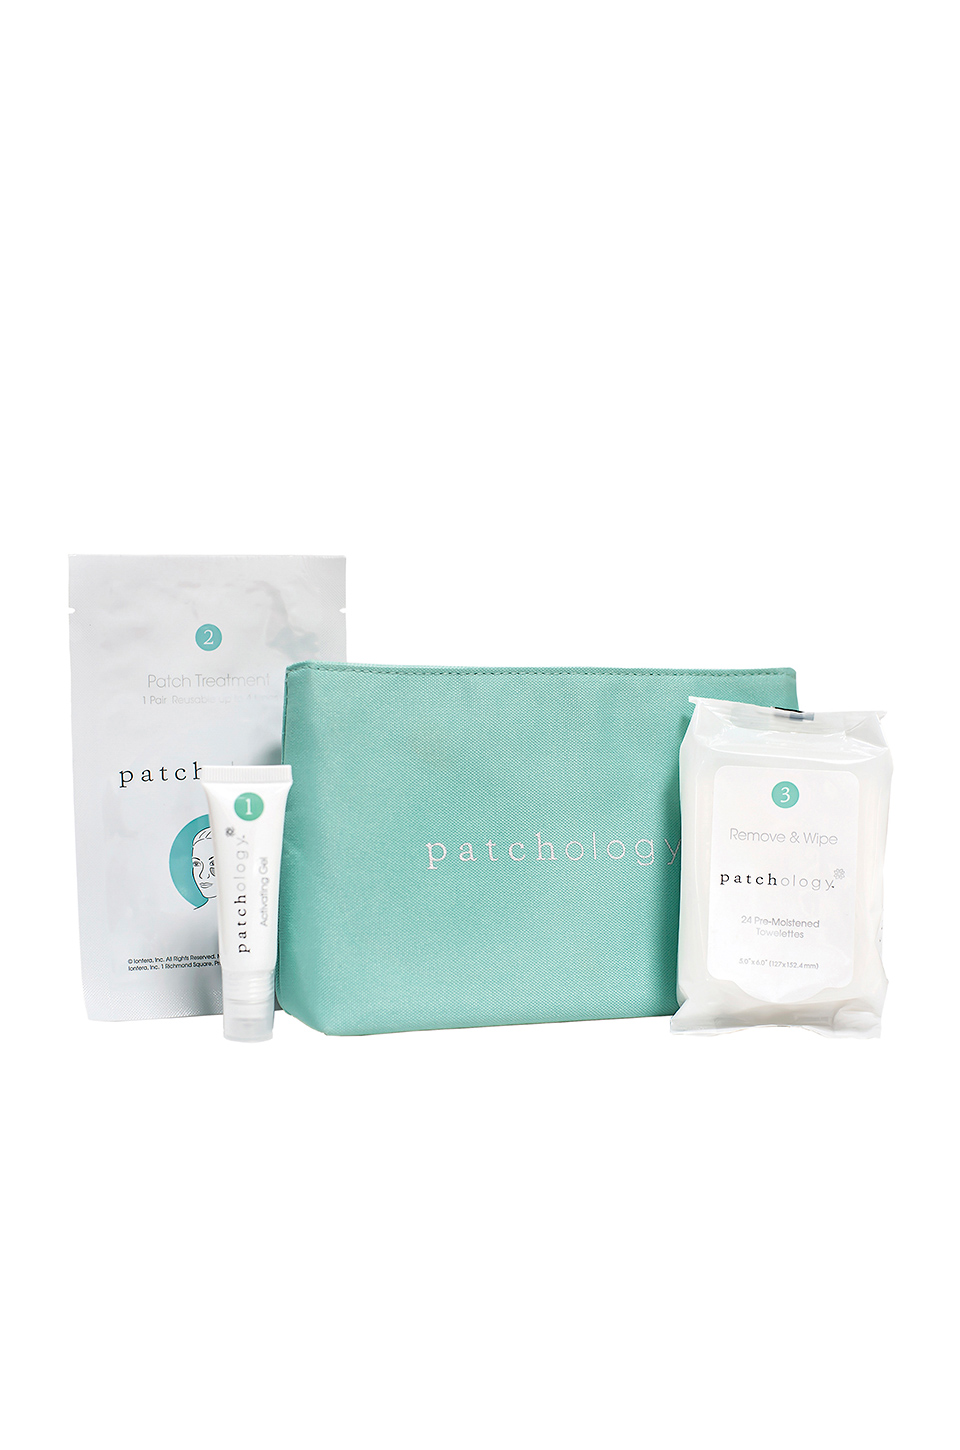 Patchology Energizing Eye Kit 4 Treatments in